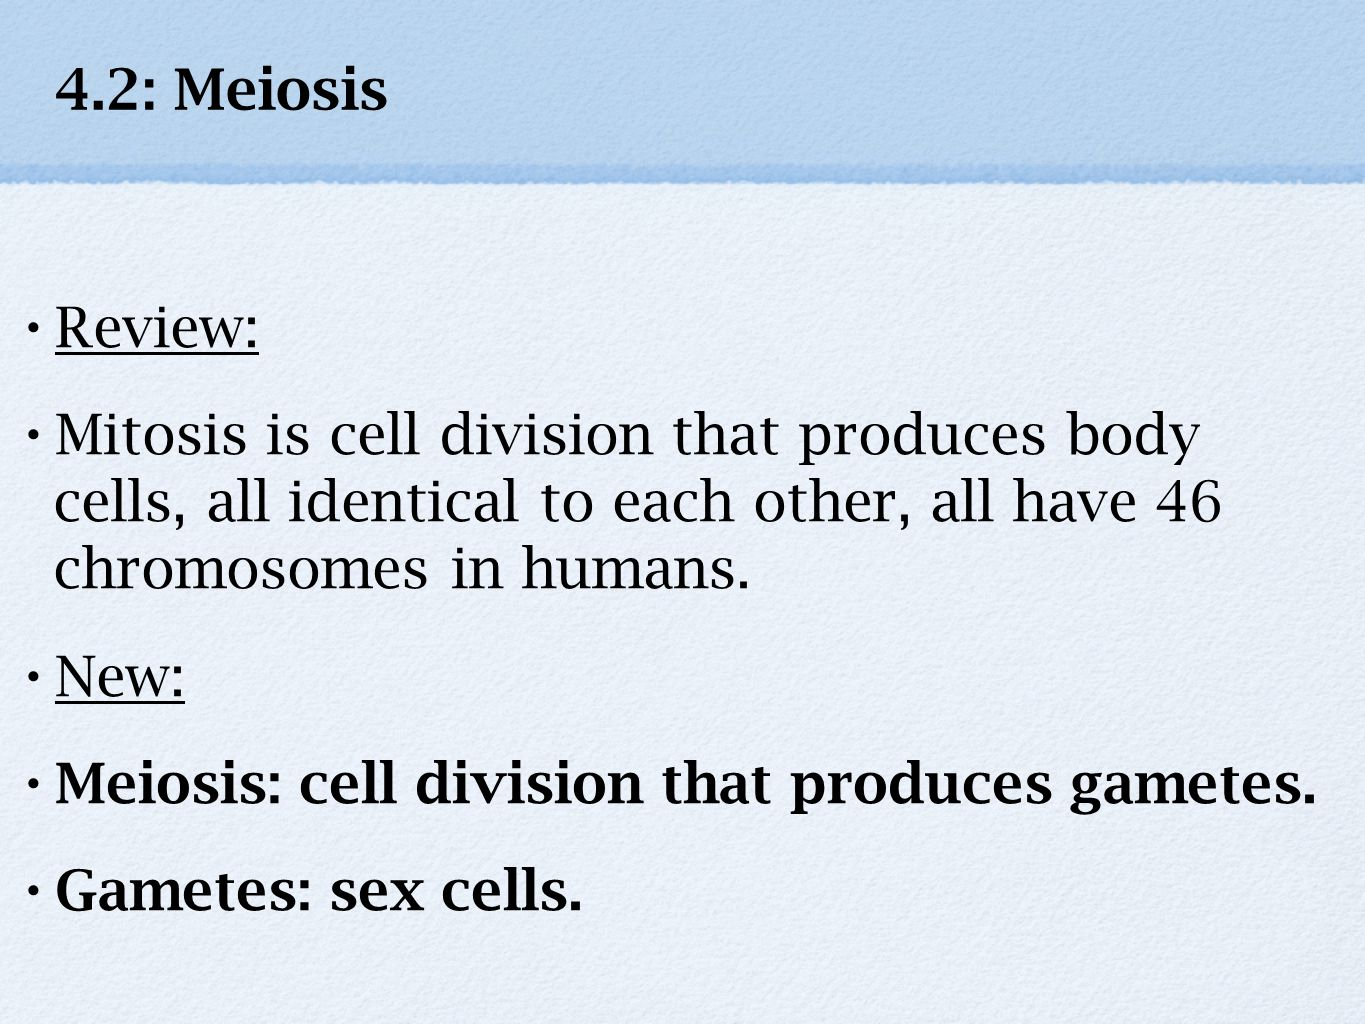 4.2: Meiosis Review: Mitosis is cell division that produces body cells, all identical to each other, all have 46 chromosomes in humans.